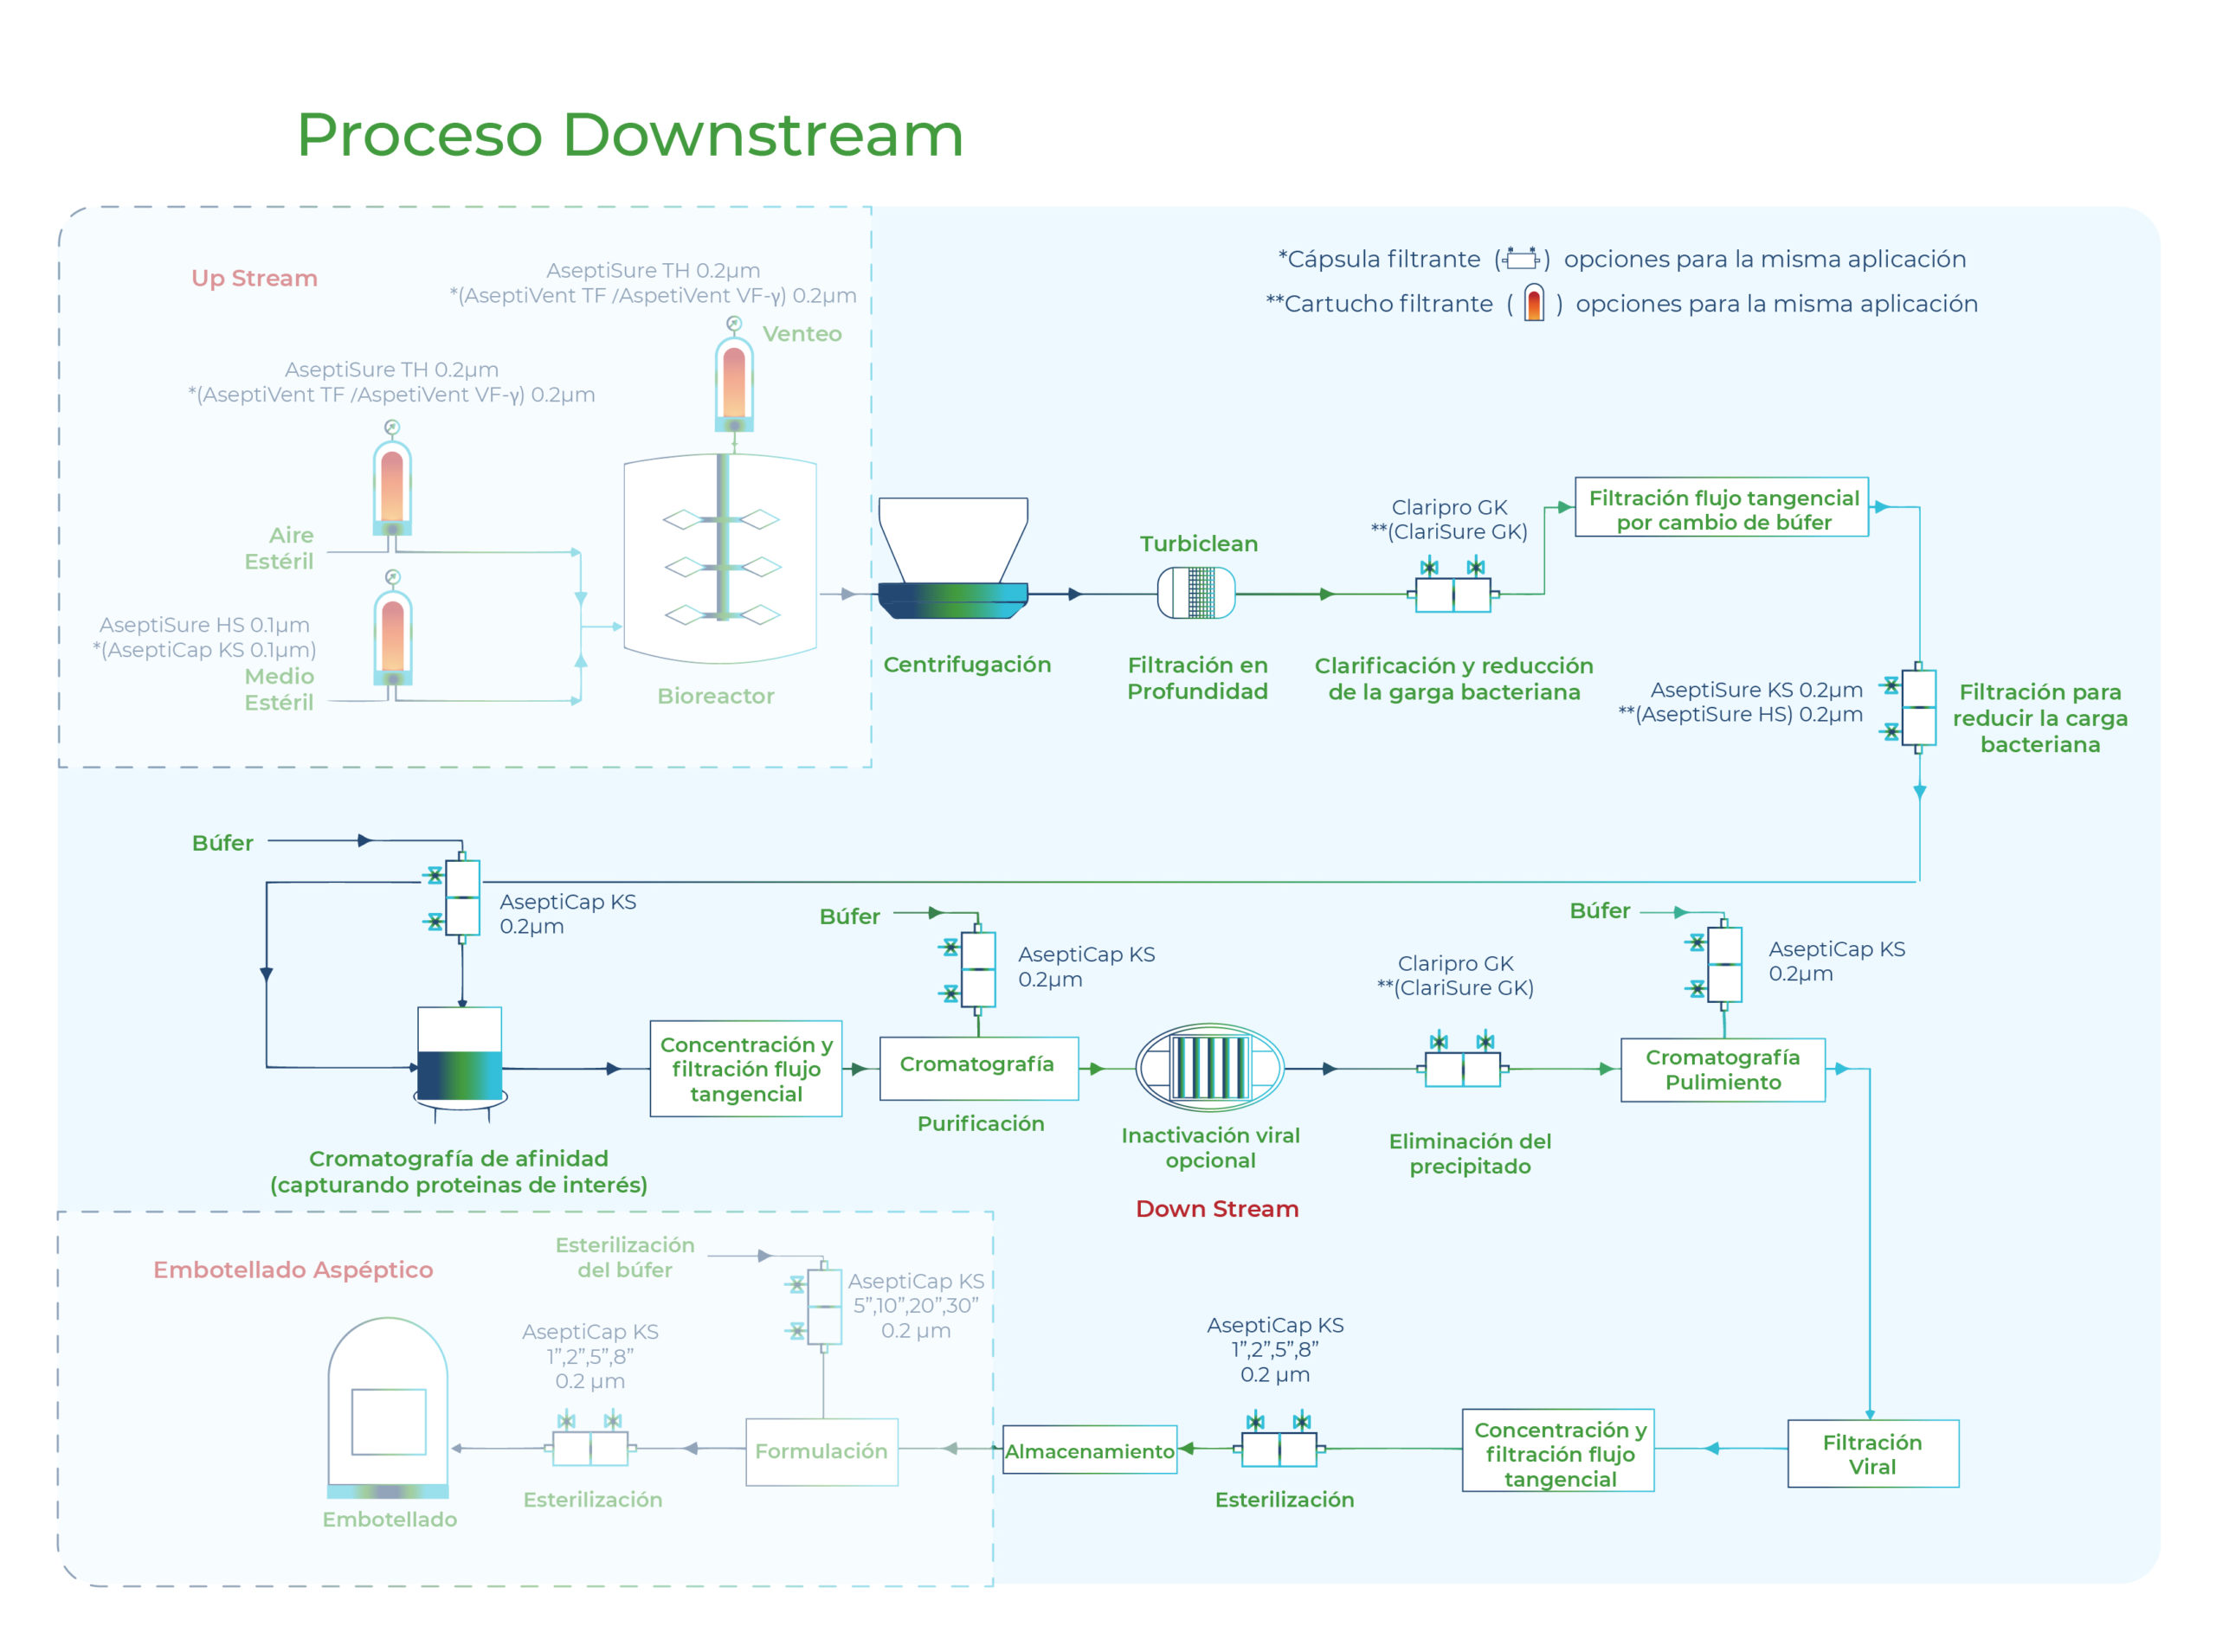 Diagrama Proceso Downstream. Gesfilter